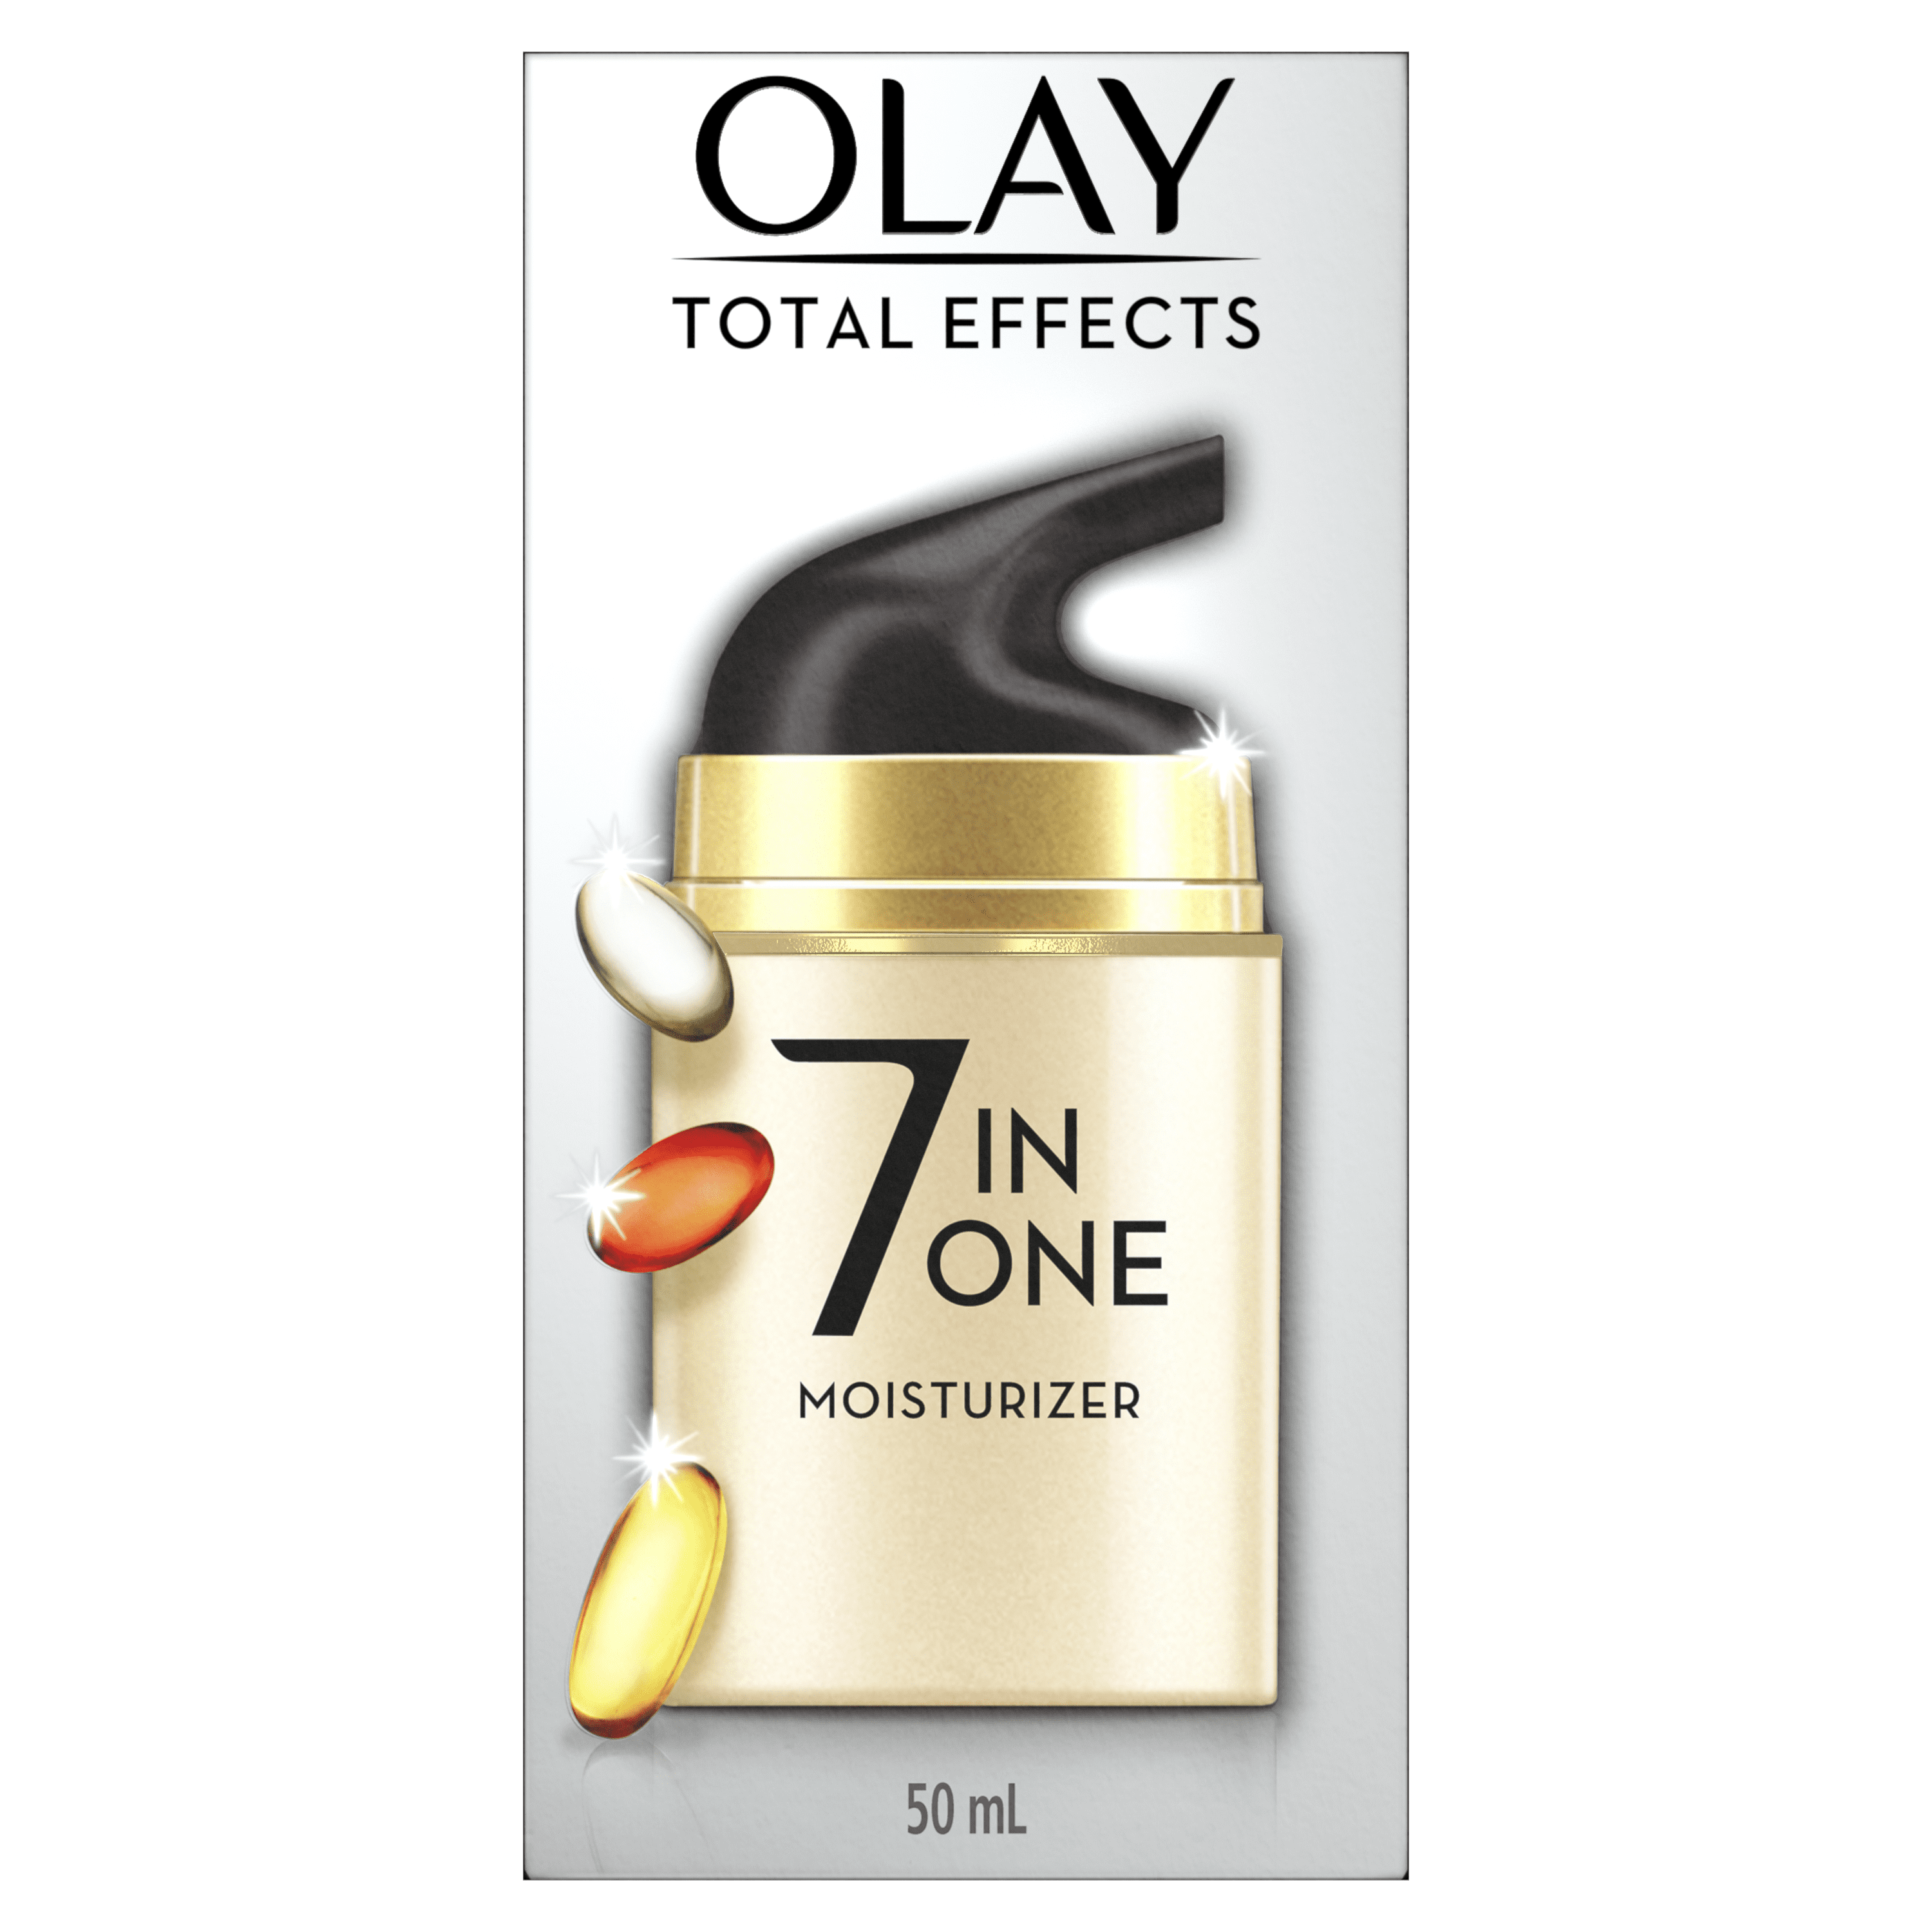 Total Effects Daily Face Moisturizer